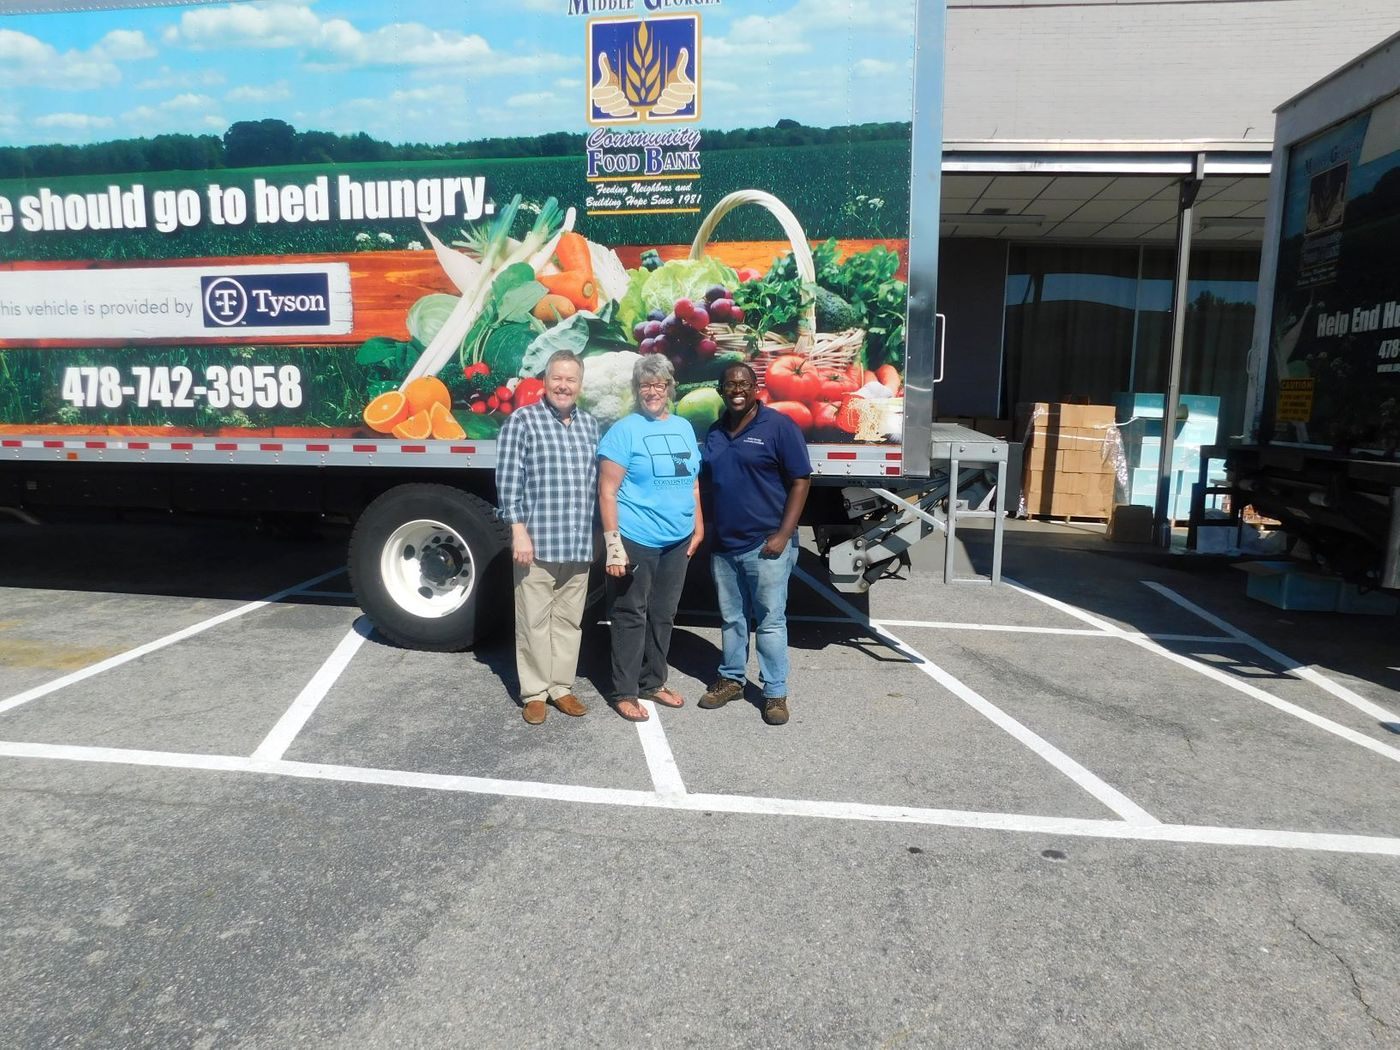 Bleckley County Mobile Pantry 3.JPG